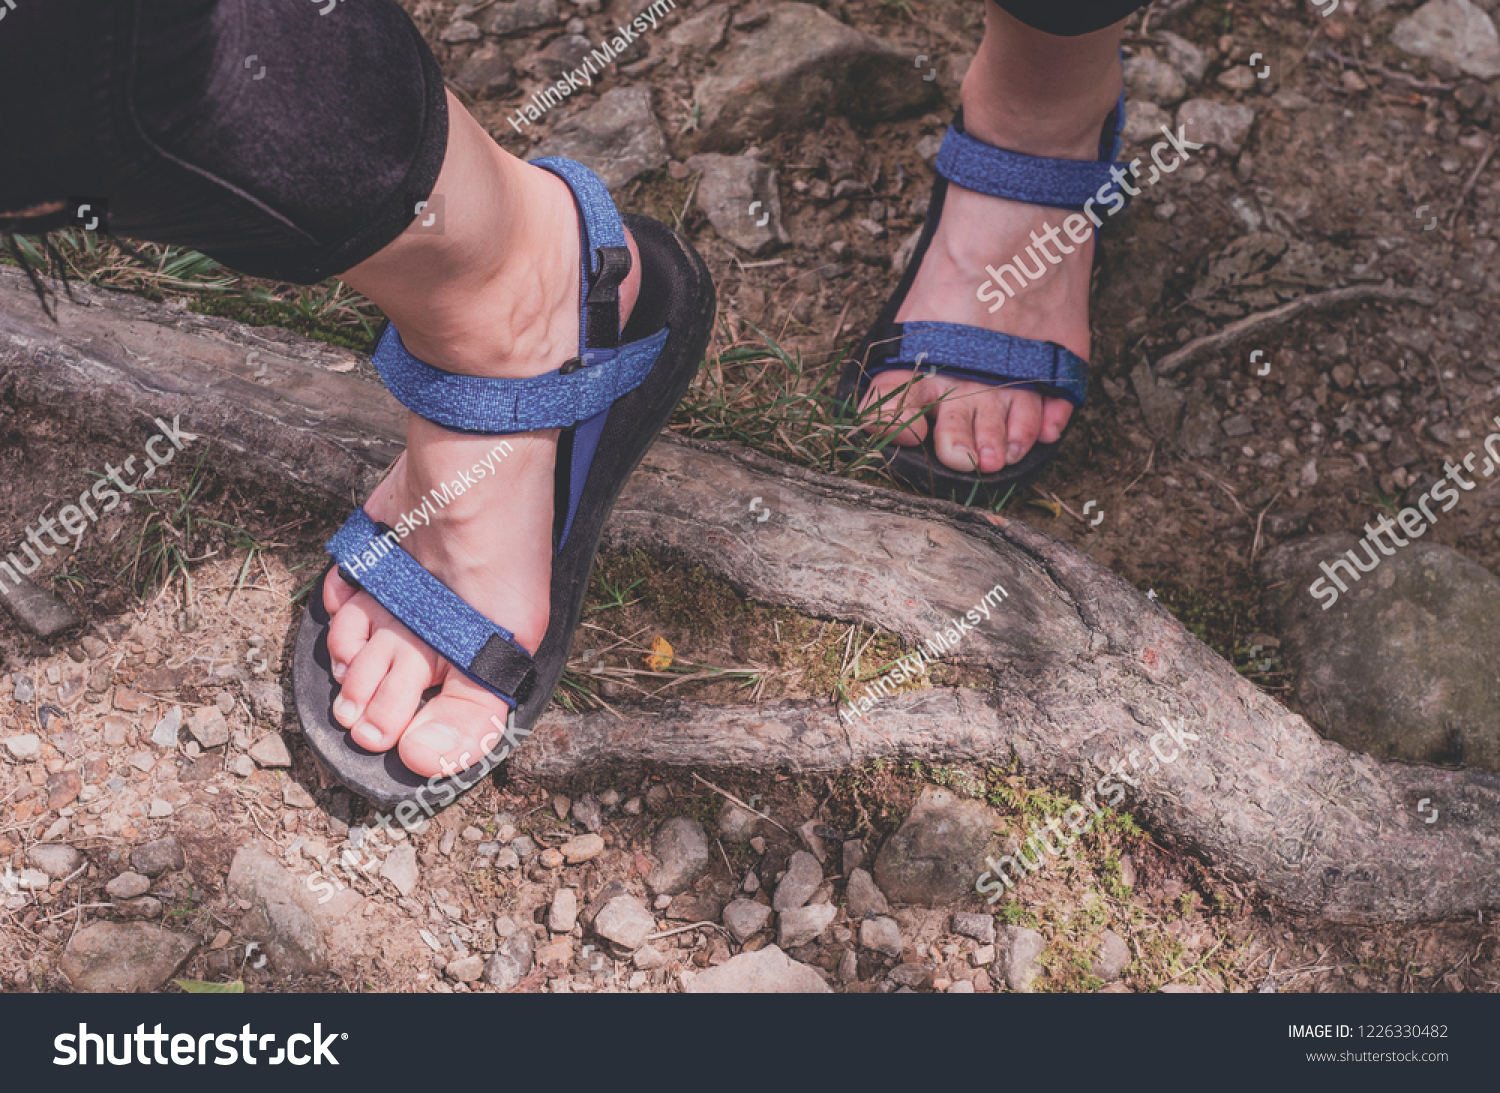 35021ee37f2 Traveler Feet in tourist sandals hiking in mountains Travel Lifestyle  adventure active summer vacations outdoor concept